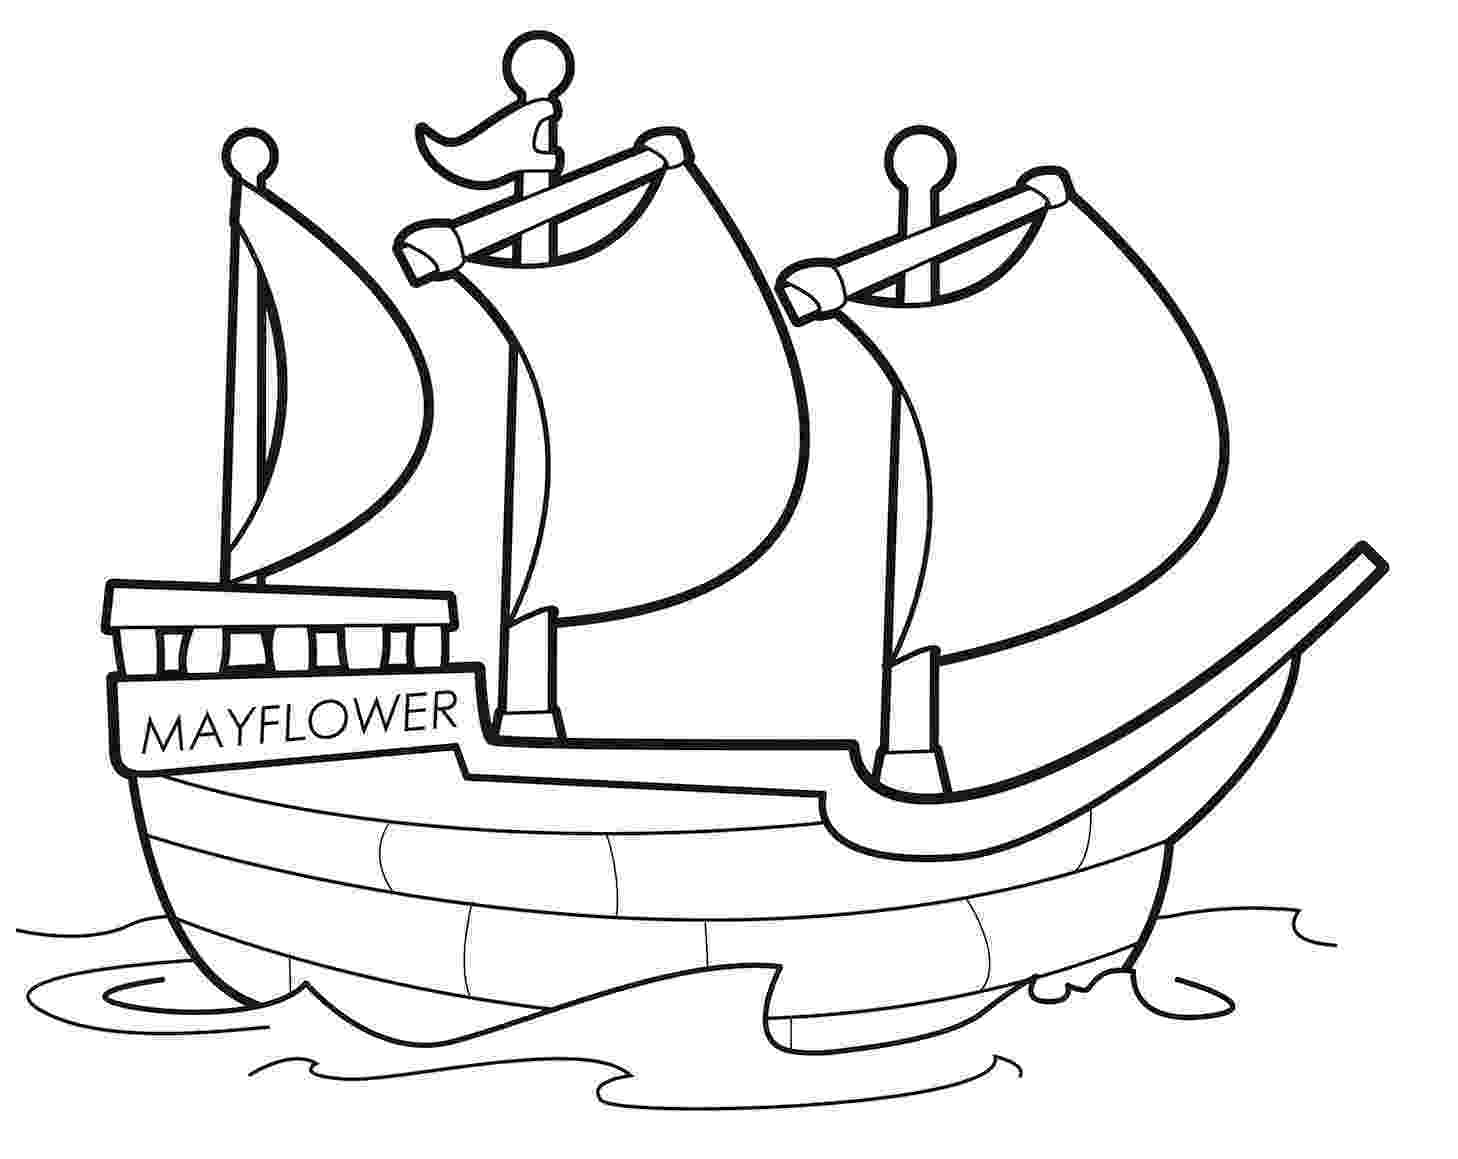 mayflower coloring page free printable mayflower coloring pages mayflower page coloring